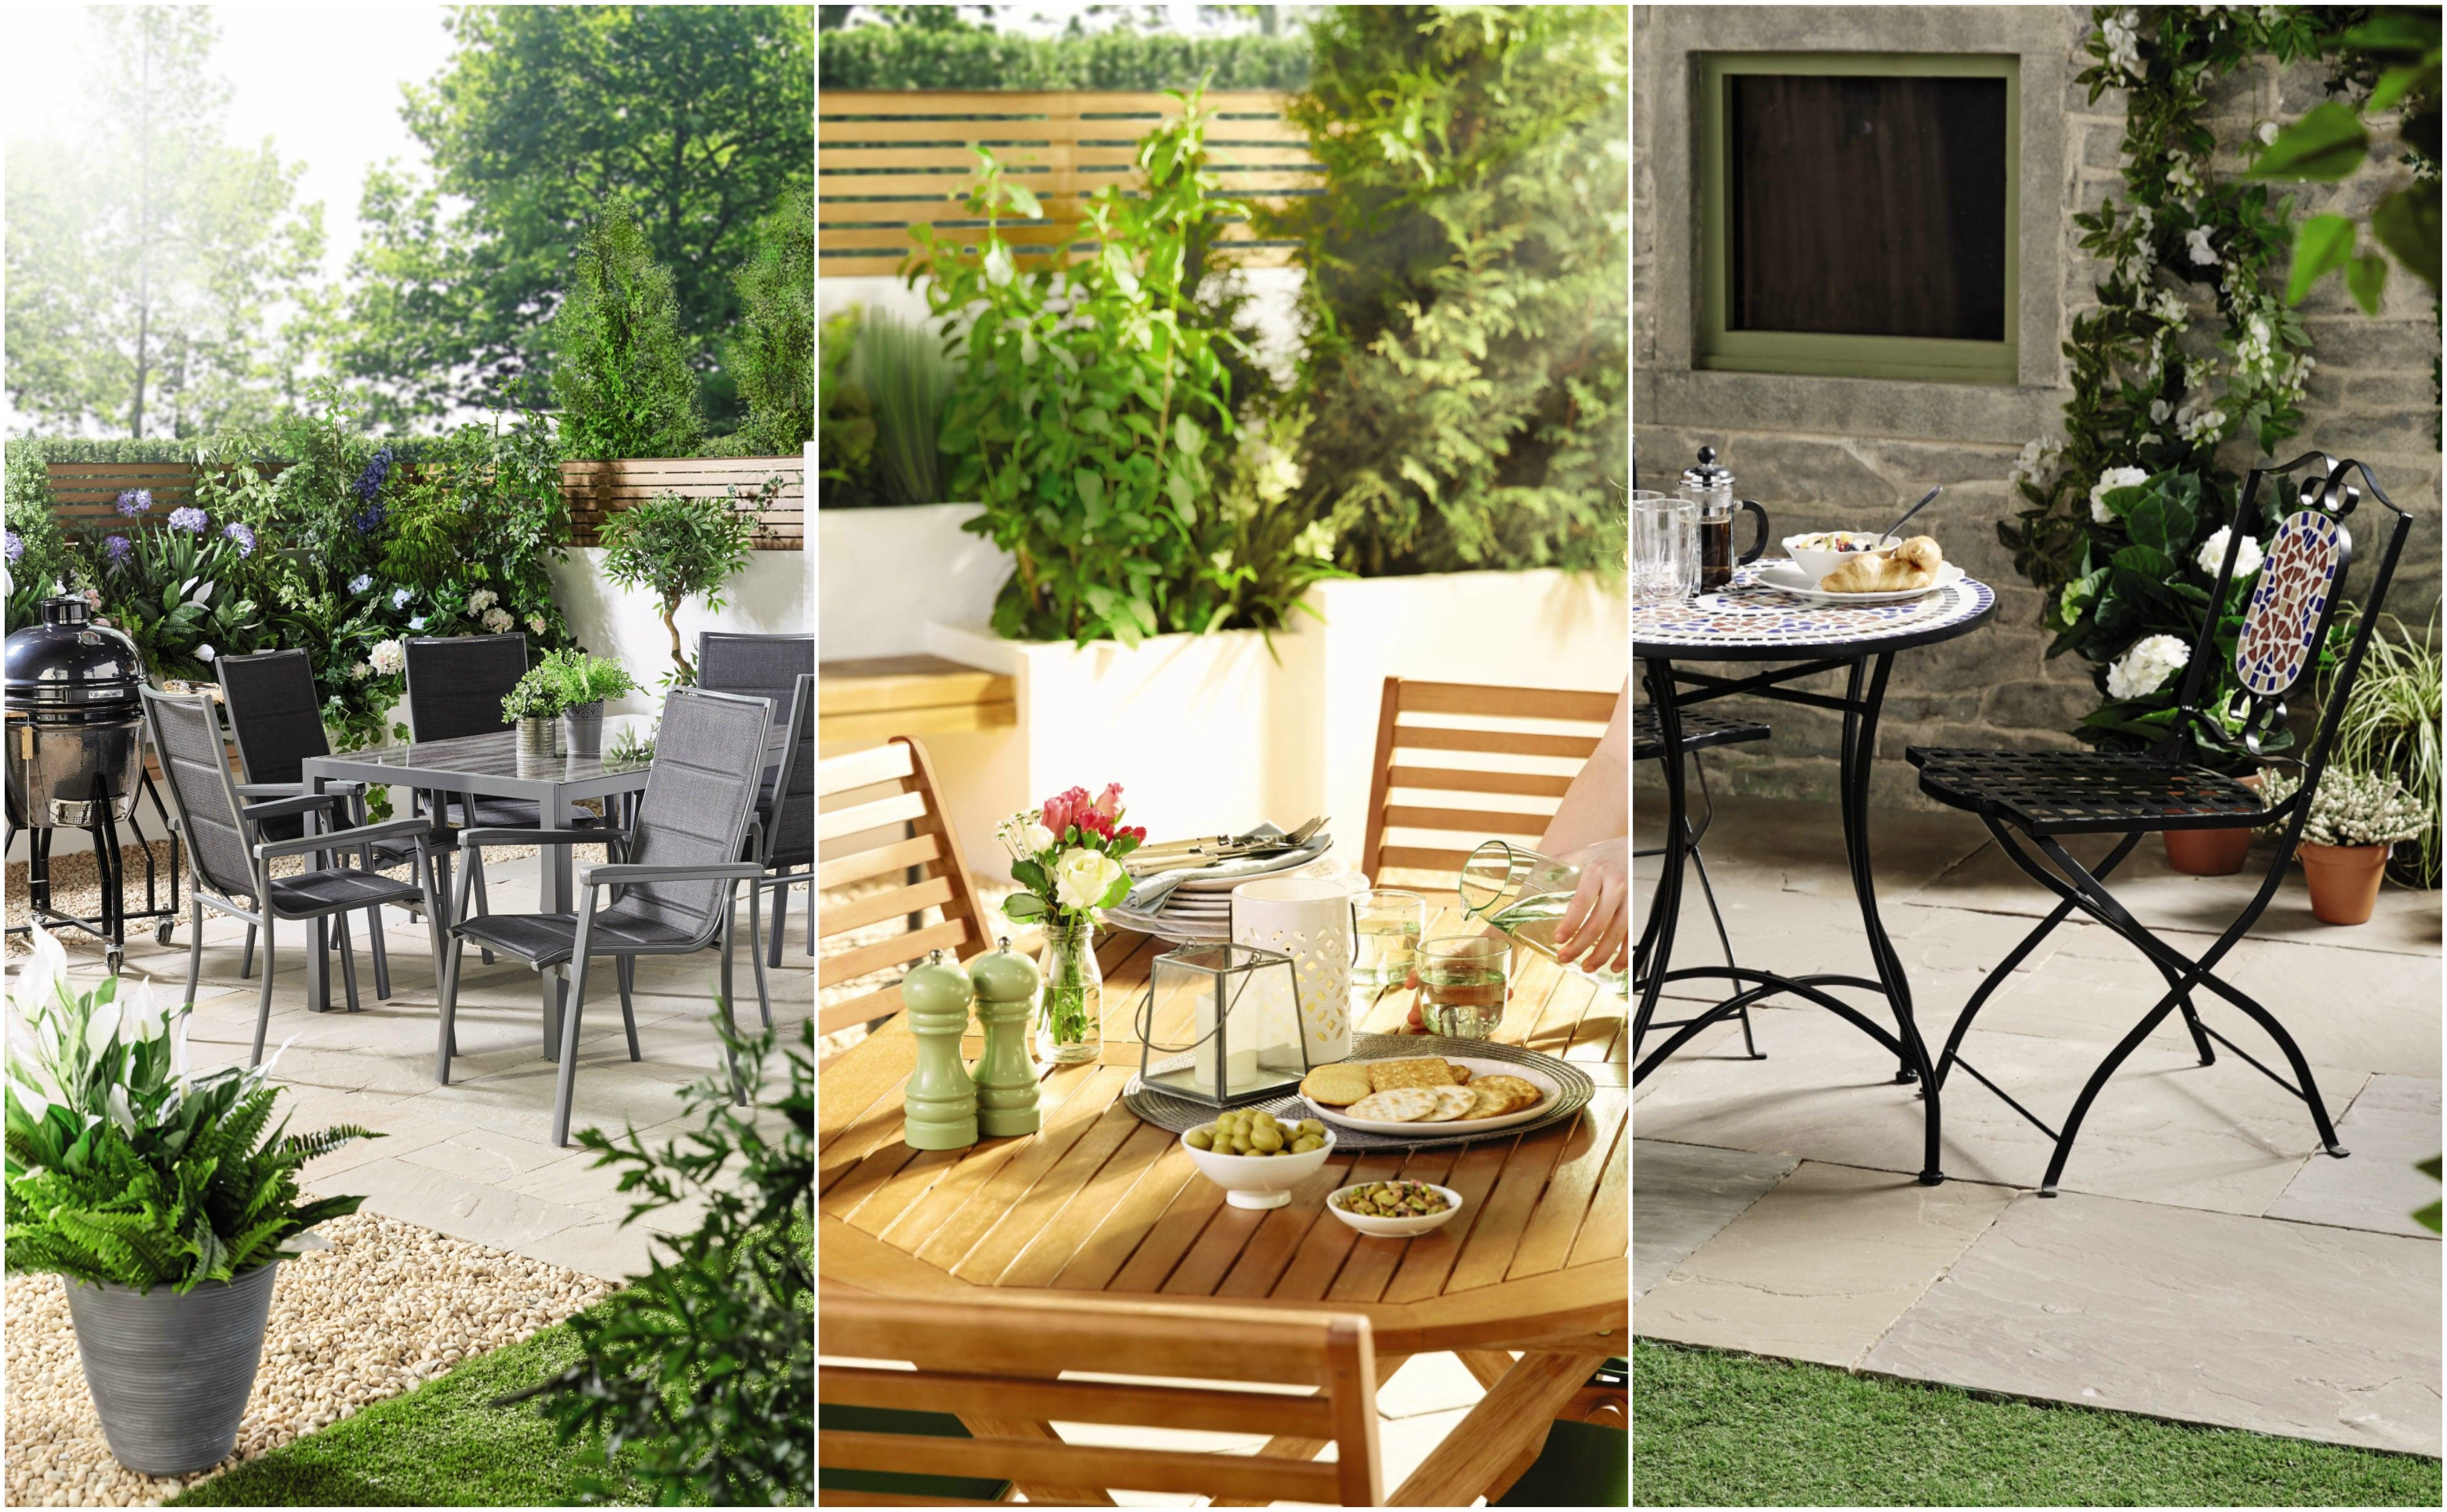 Pleasant Aldi Take On John Lewis With Value Garden Furniture Sets Gmtry Best Dining Table And Chair Ideas Images Gmtryco